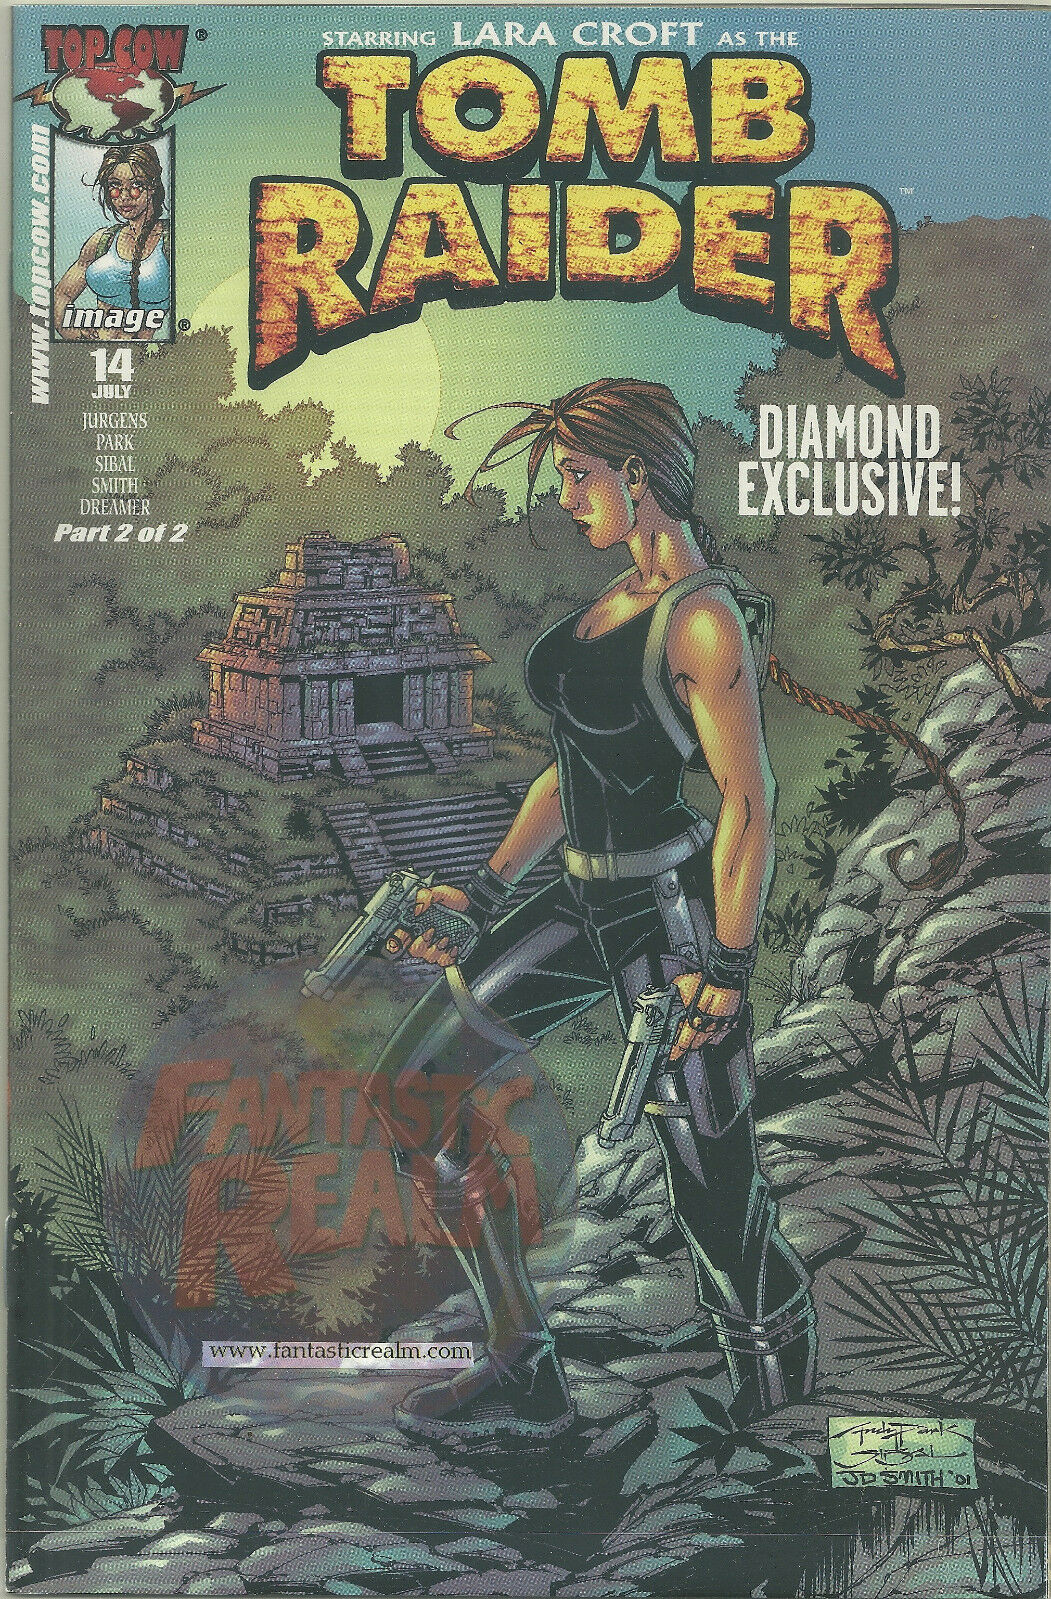 Tomb Raider #14 Diamond Exclusive Cover (Top Cow/Image)